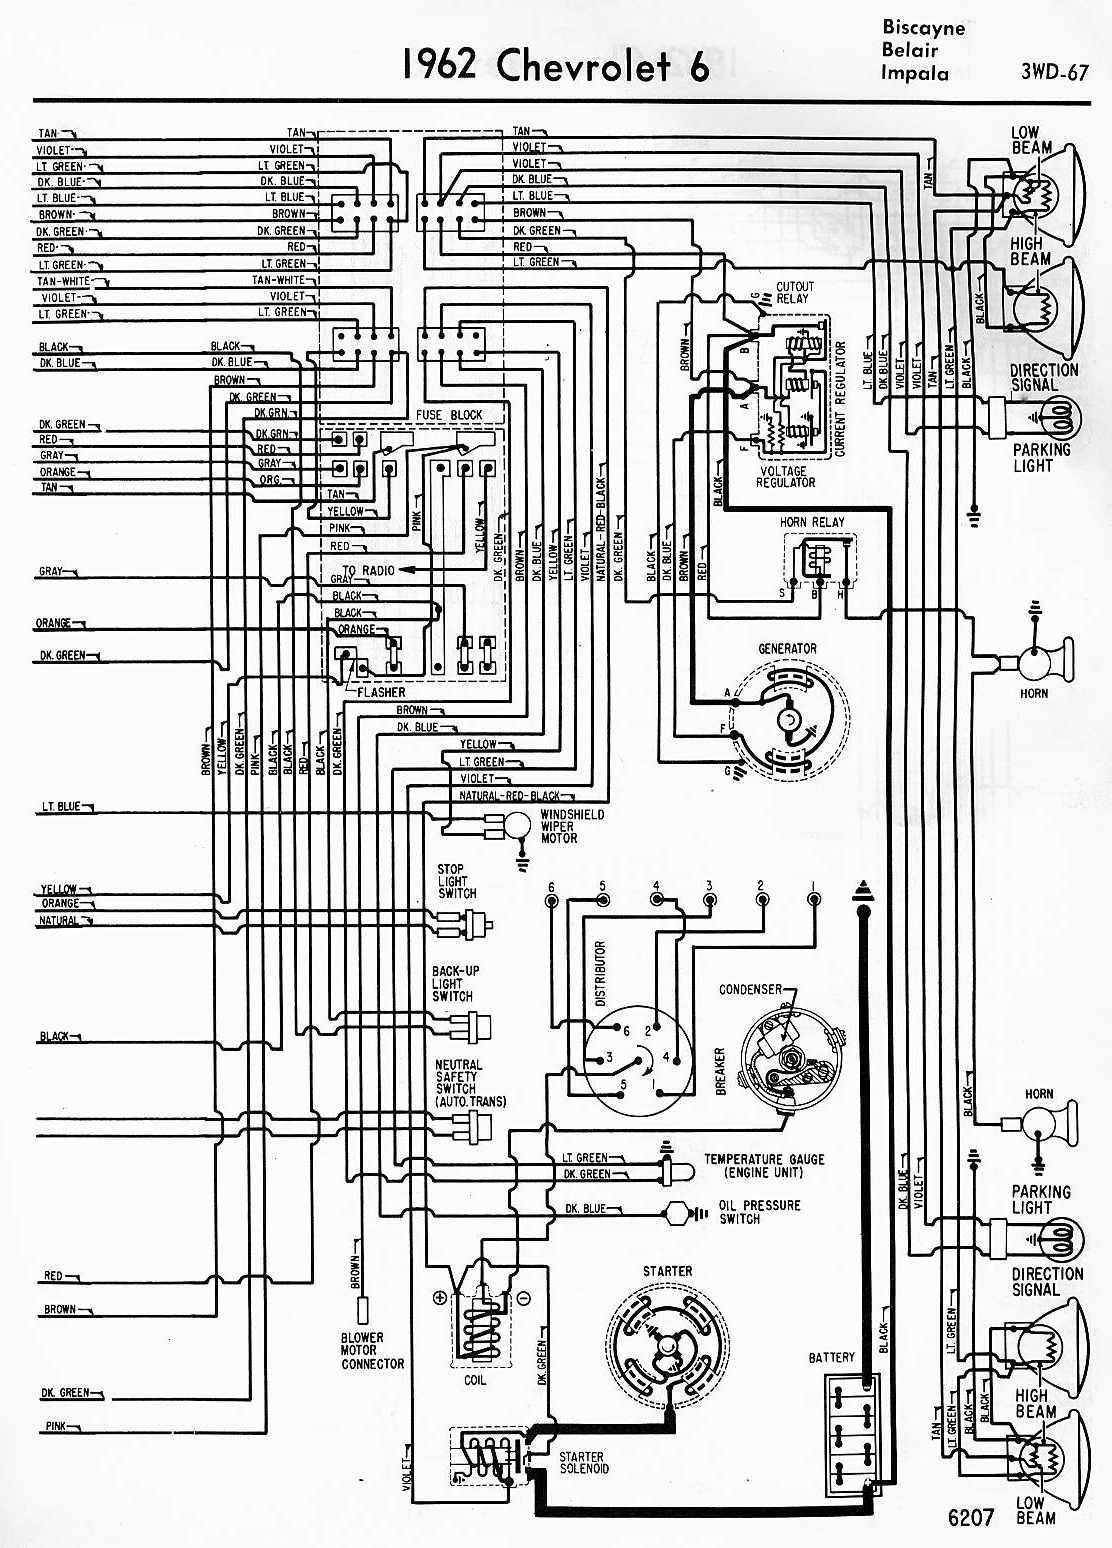 medium resolution of hot rod wiring diagrams chevy impala diagram trusted wiring diagram 07 impala wiring diagram 66 chevy